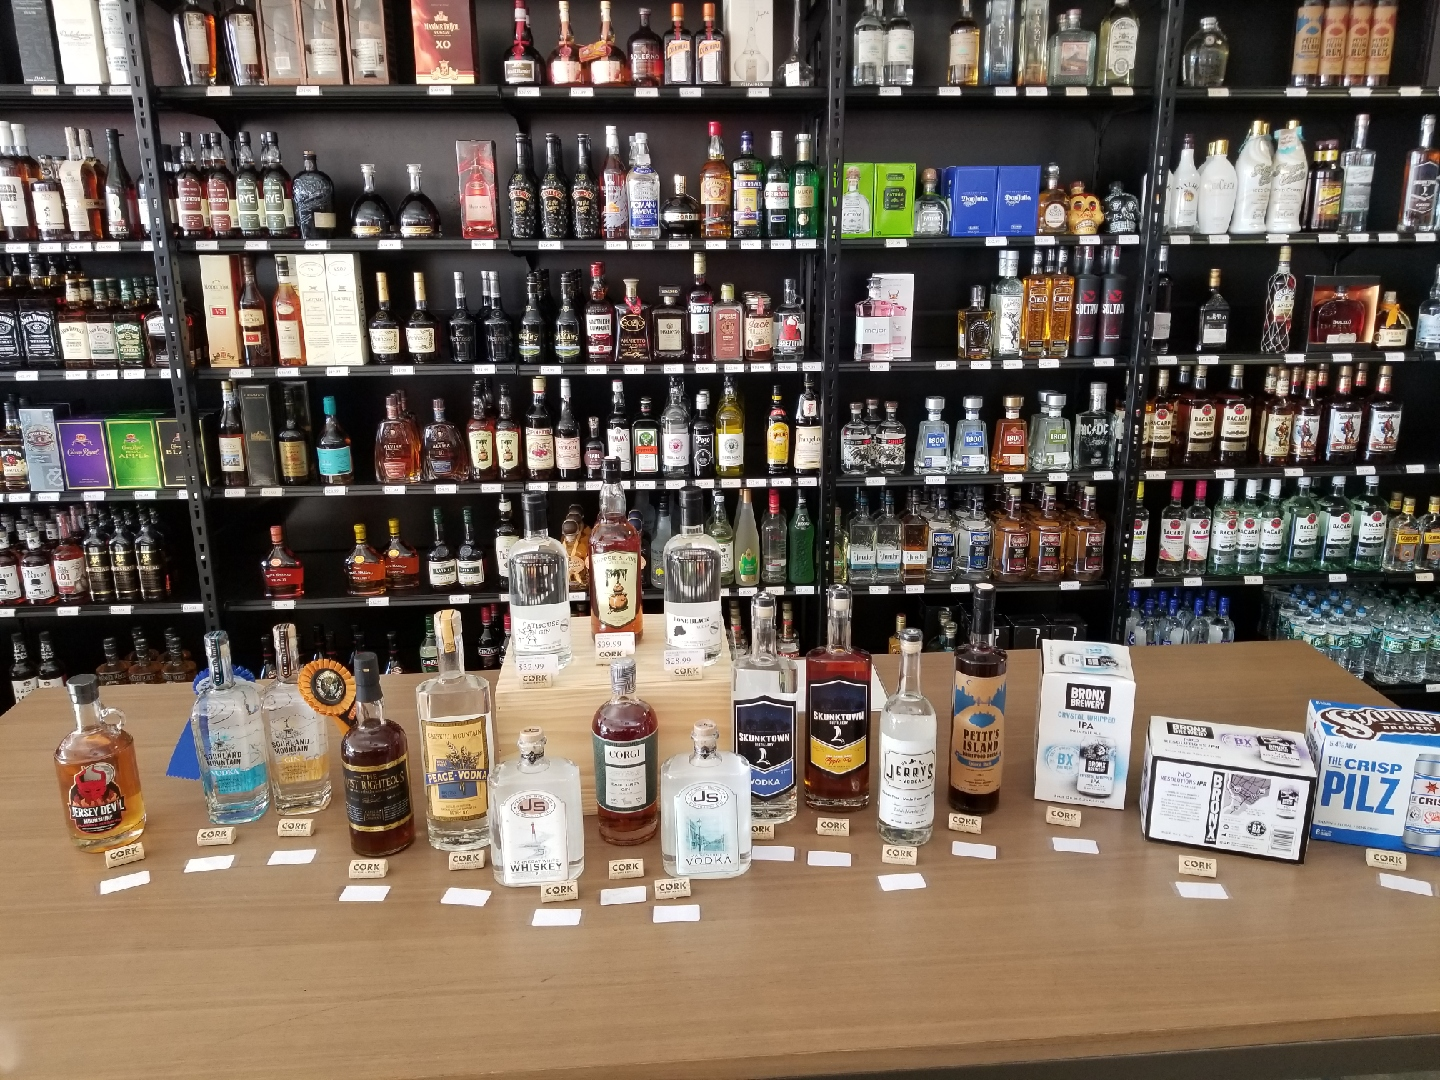 Locally brewed & distilled products featured this weekend!